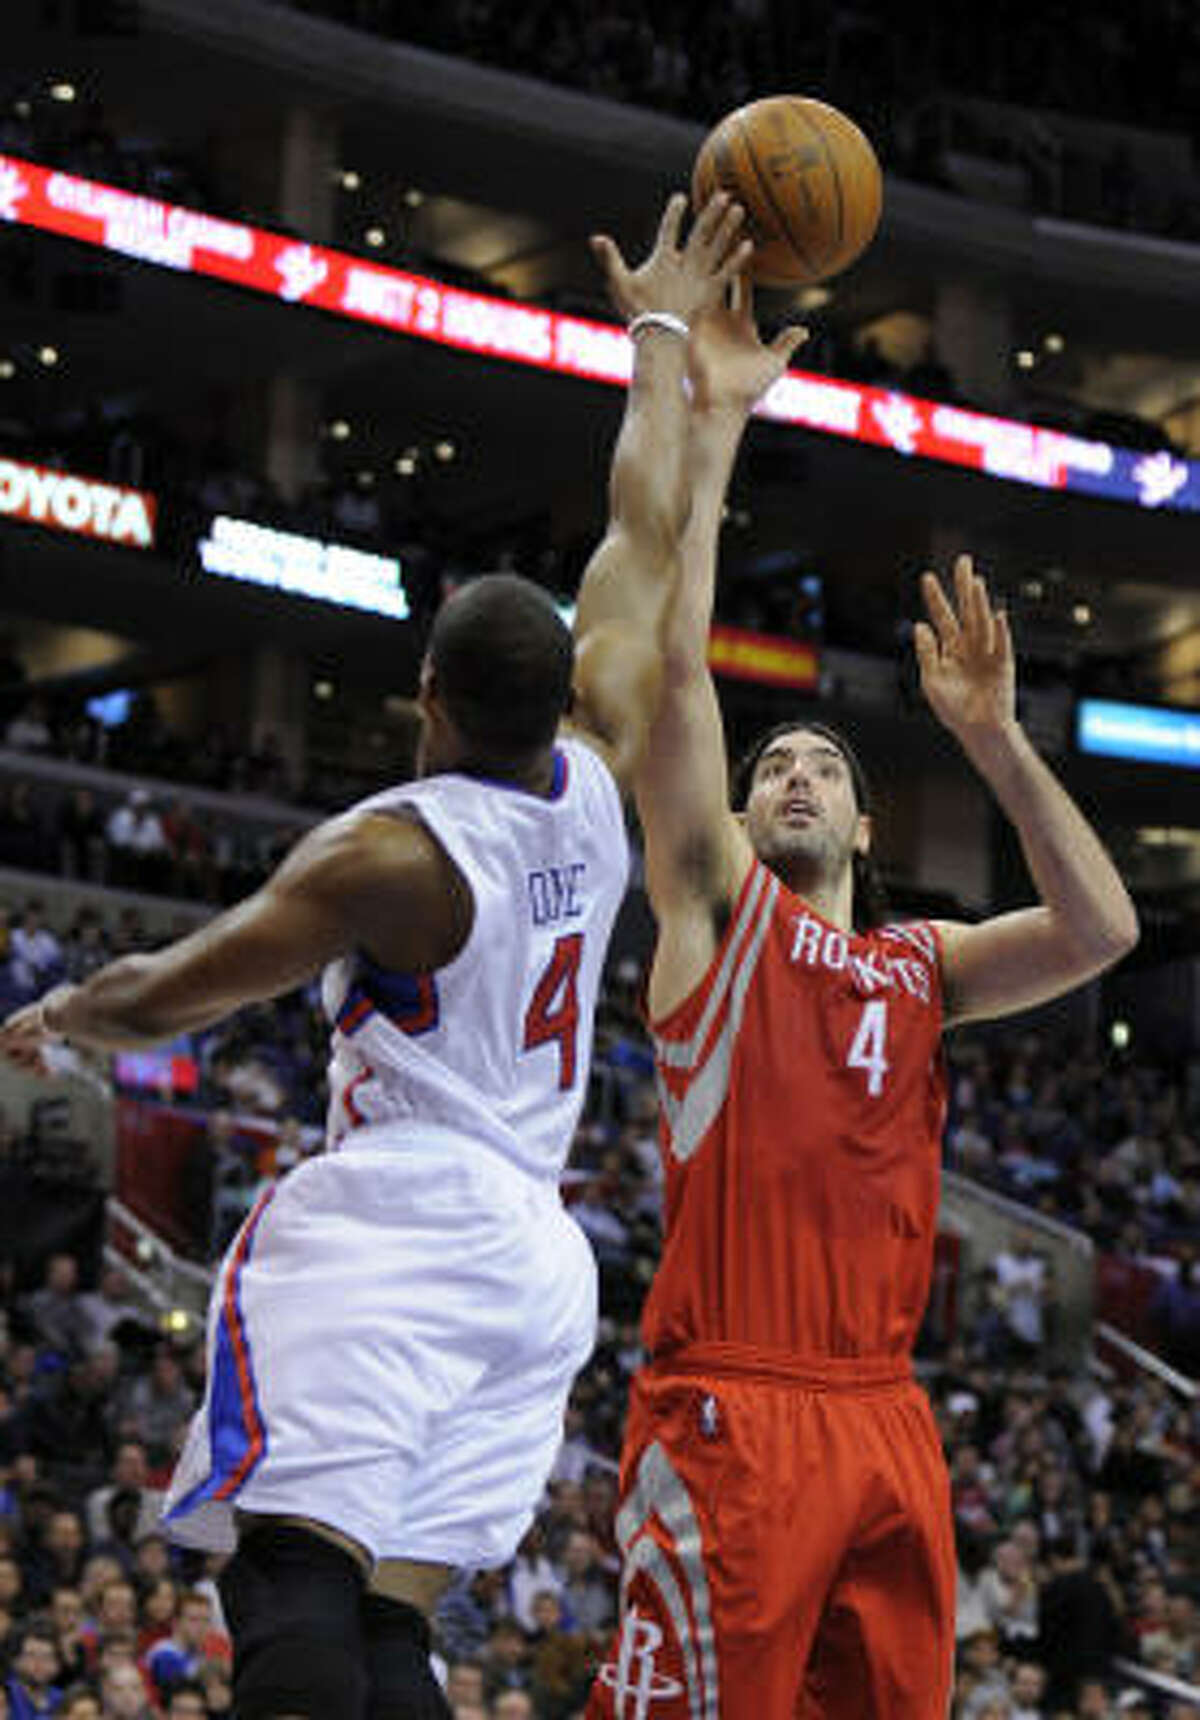 Rockets forward Luis Scola, right, shoots over Clippers guard Randy Foye during the first half.